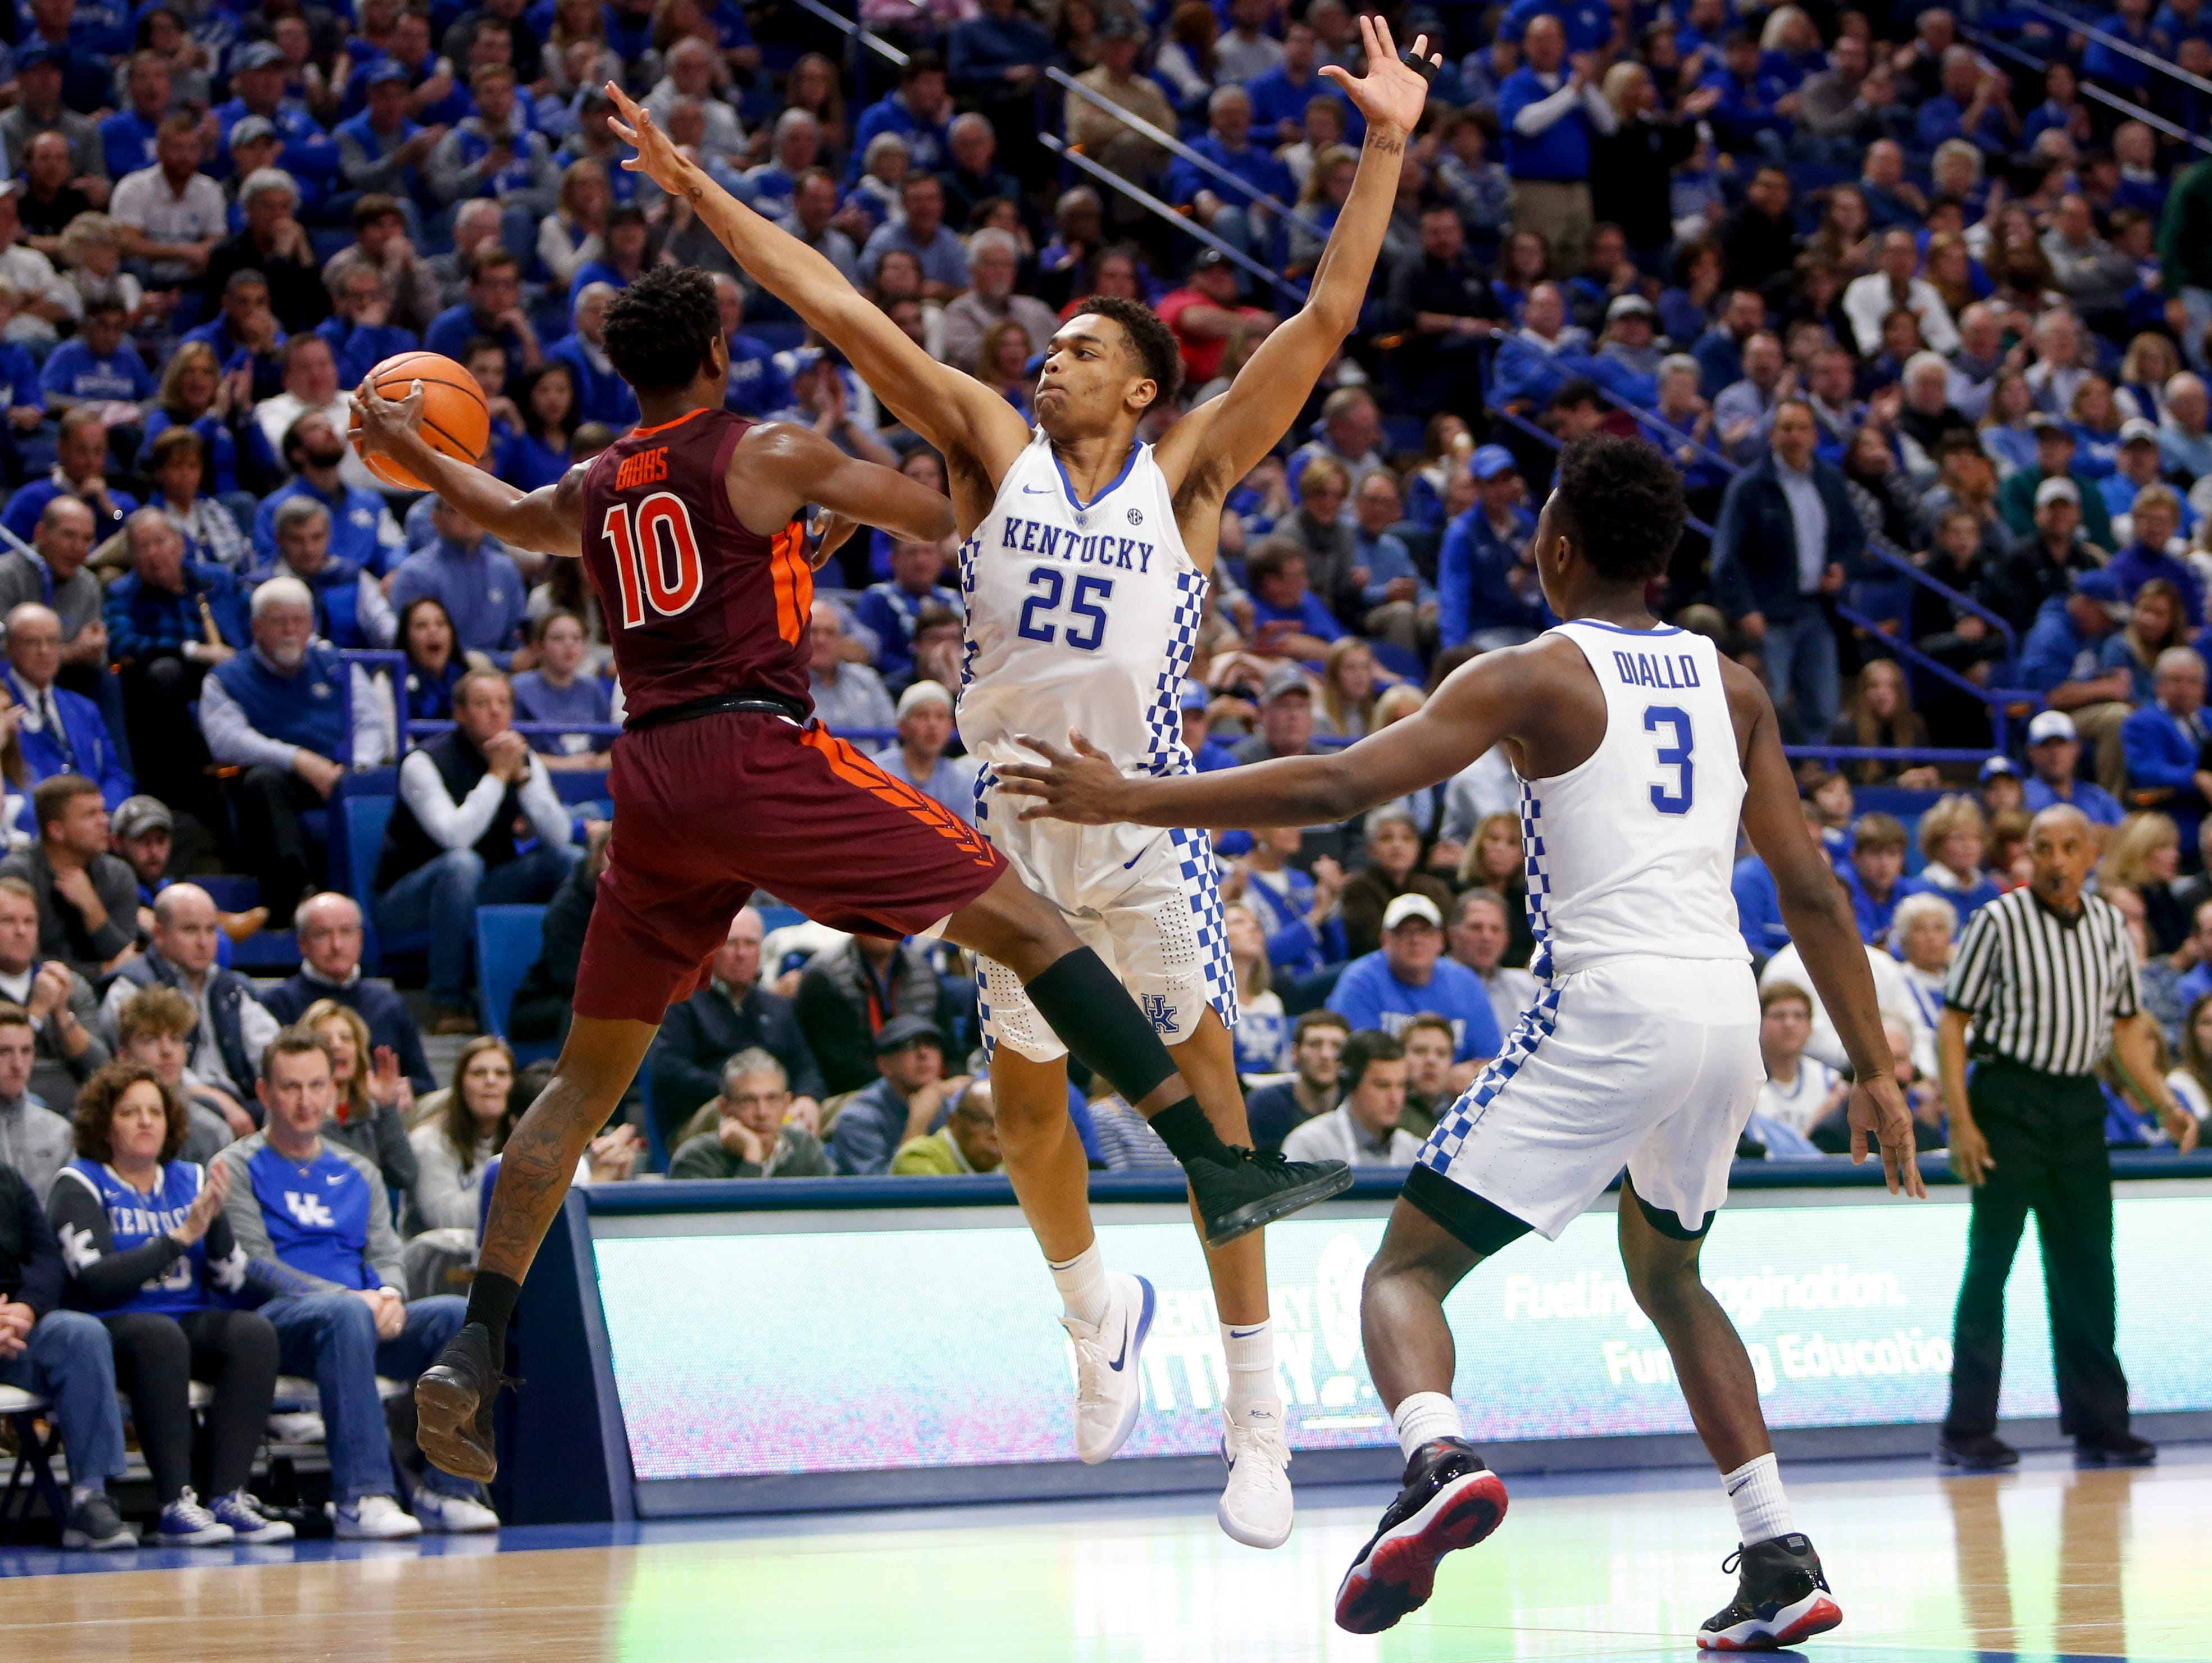 Kentucky Basketball Is Youngest Team For 2017 18 Data: Kentucky's Pressure Defense Shows The Potential The Young